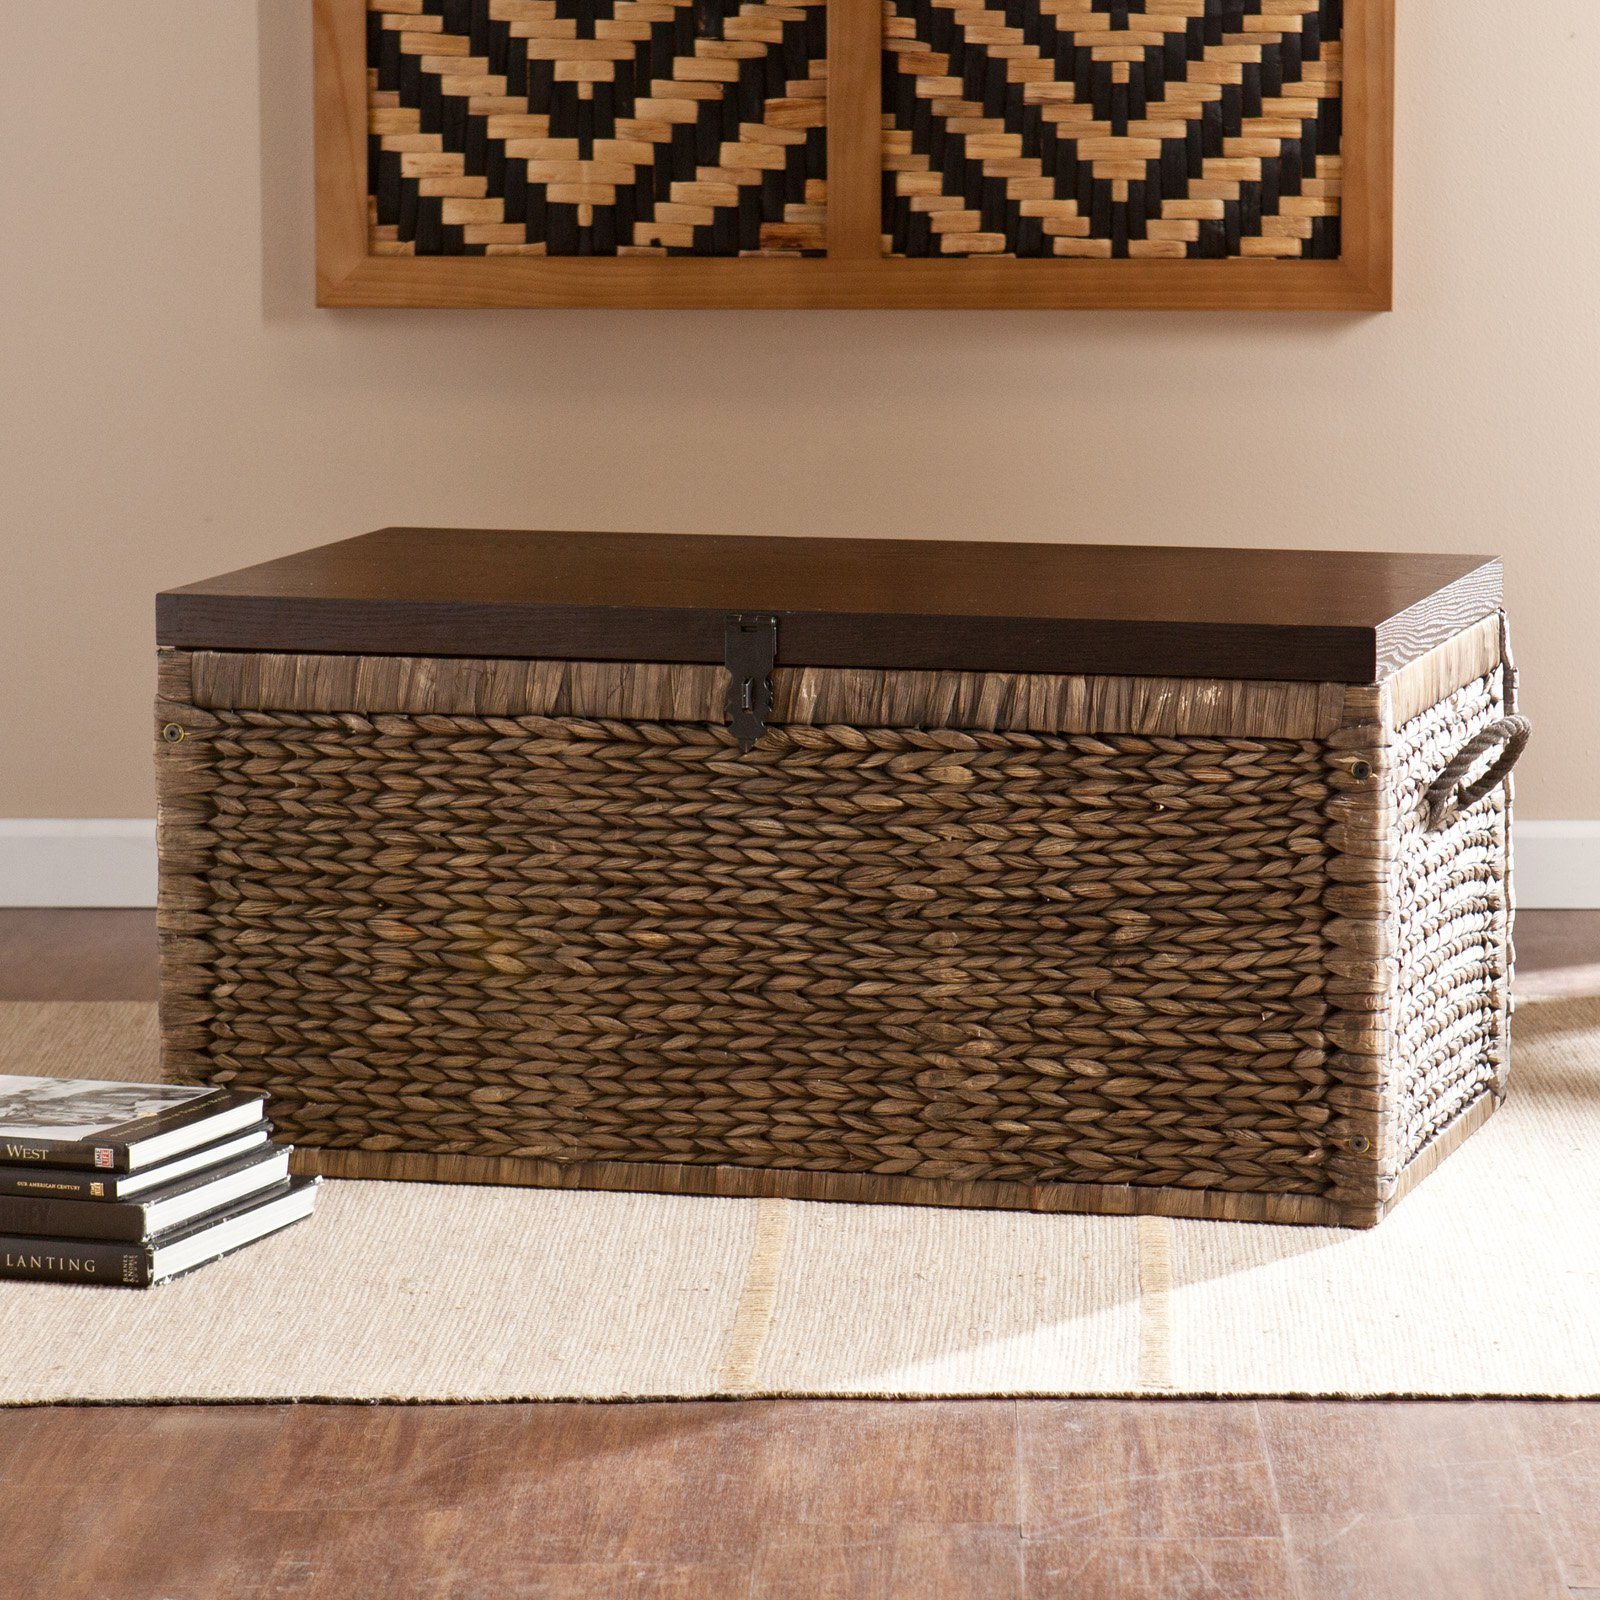 decor large trunk inspirations popular and wooden full of decorative architecture trunks size from storage chests